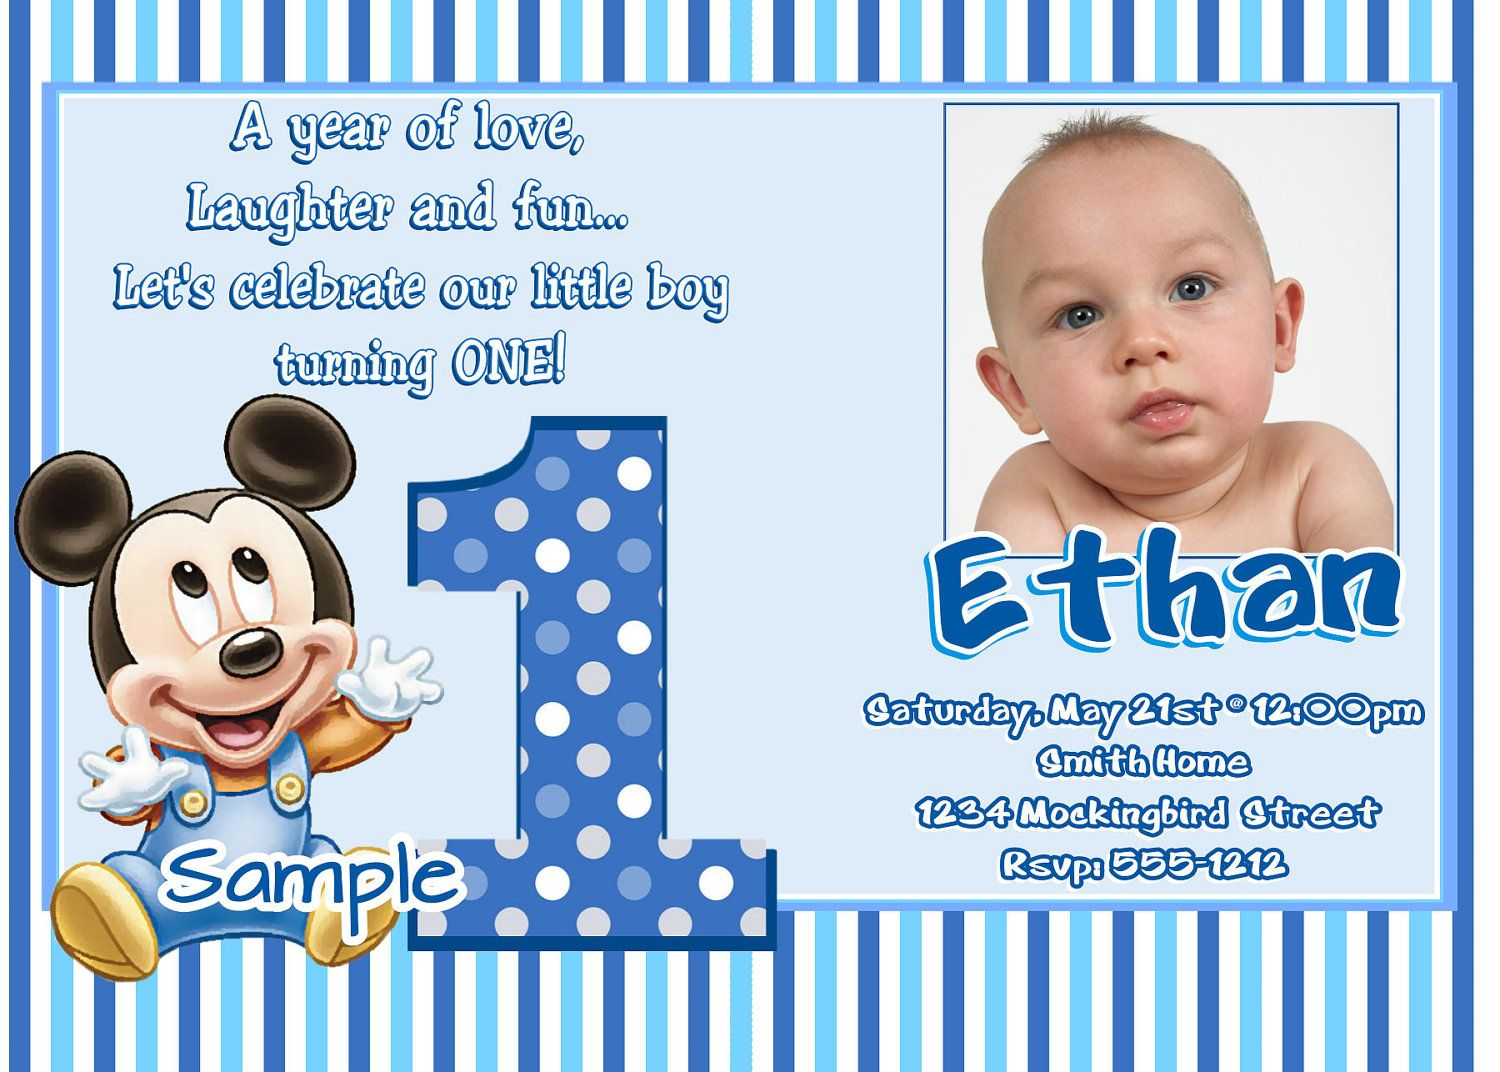 Free 1st birthday invitation maker invitation sample pinterest birthday invitation templates stopboris Choice Image